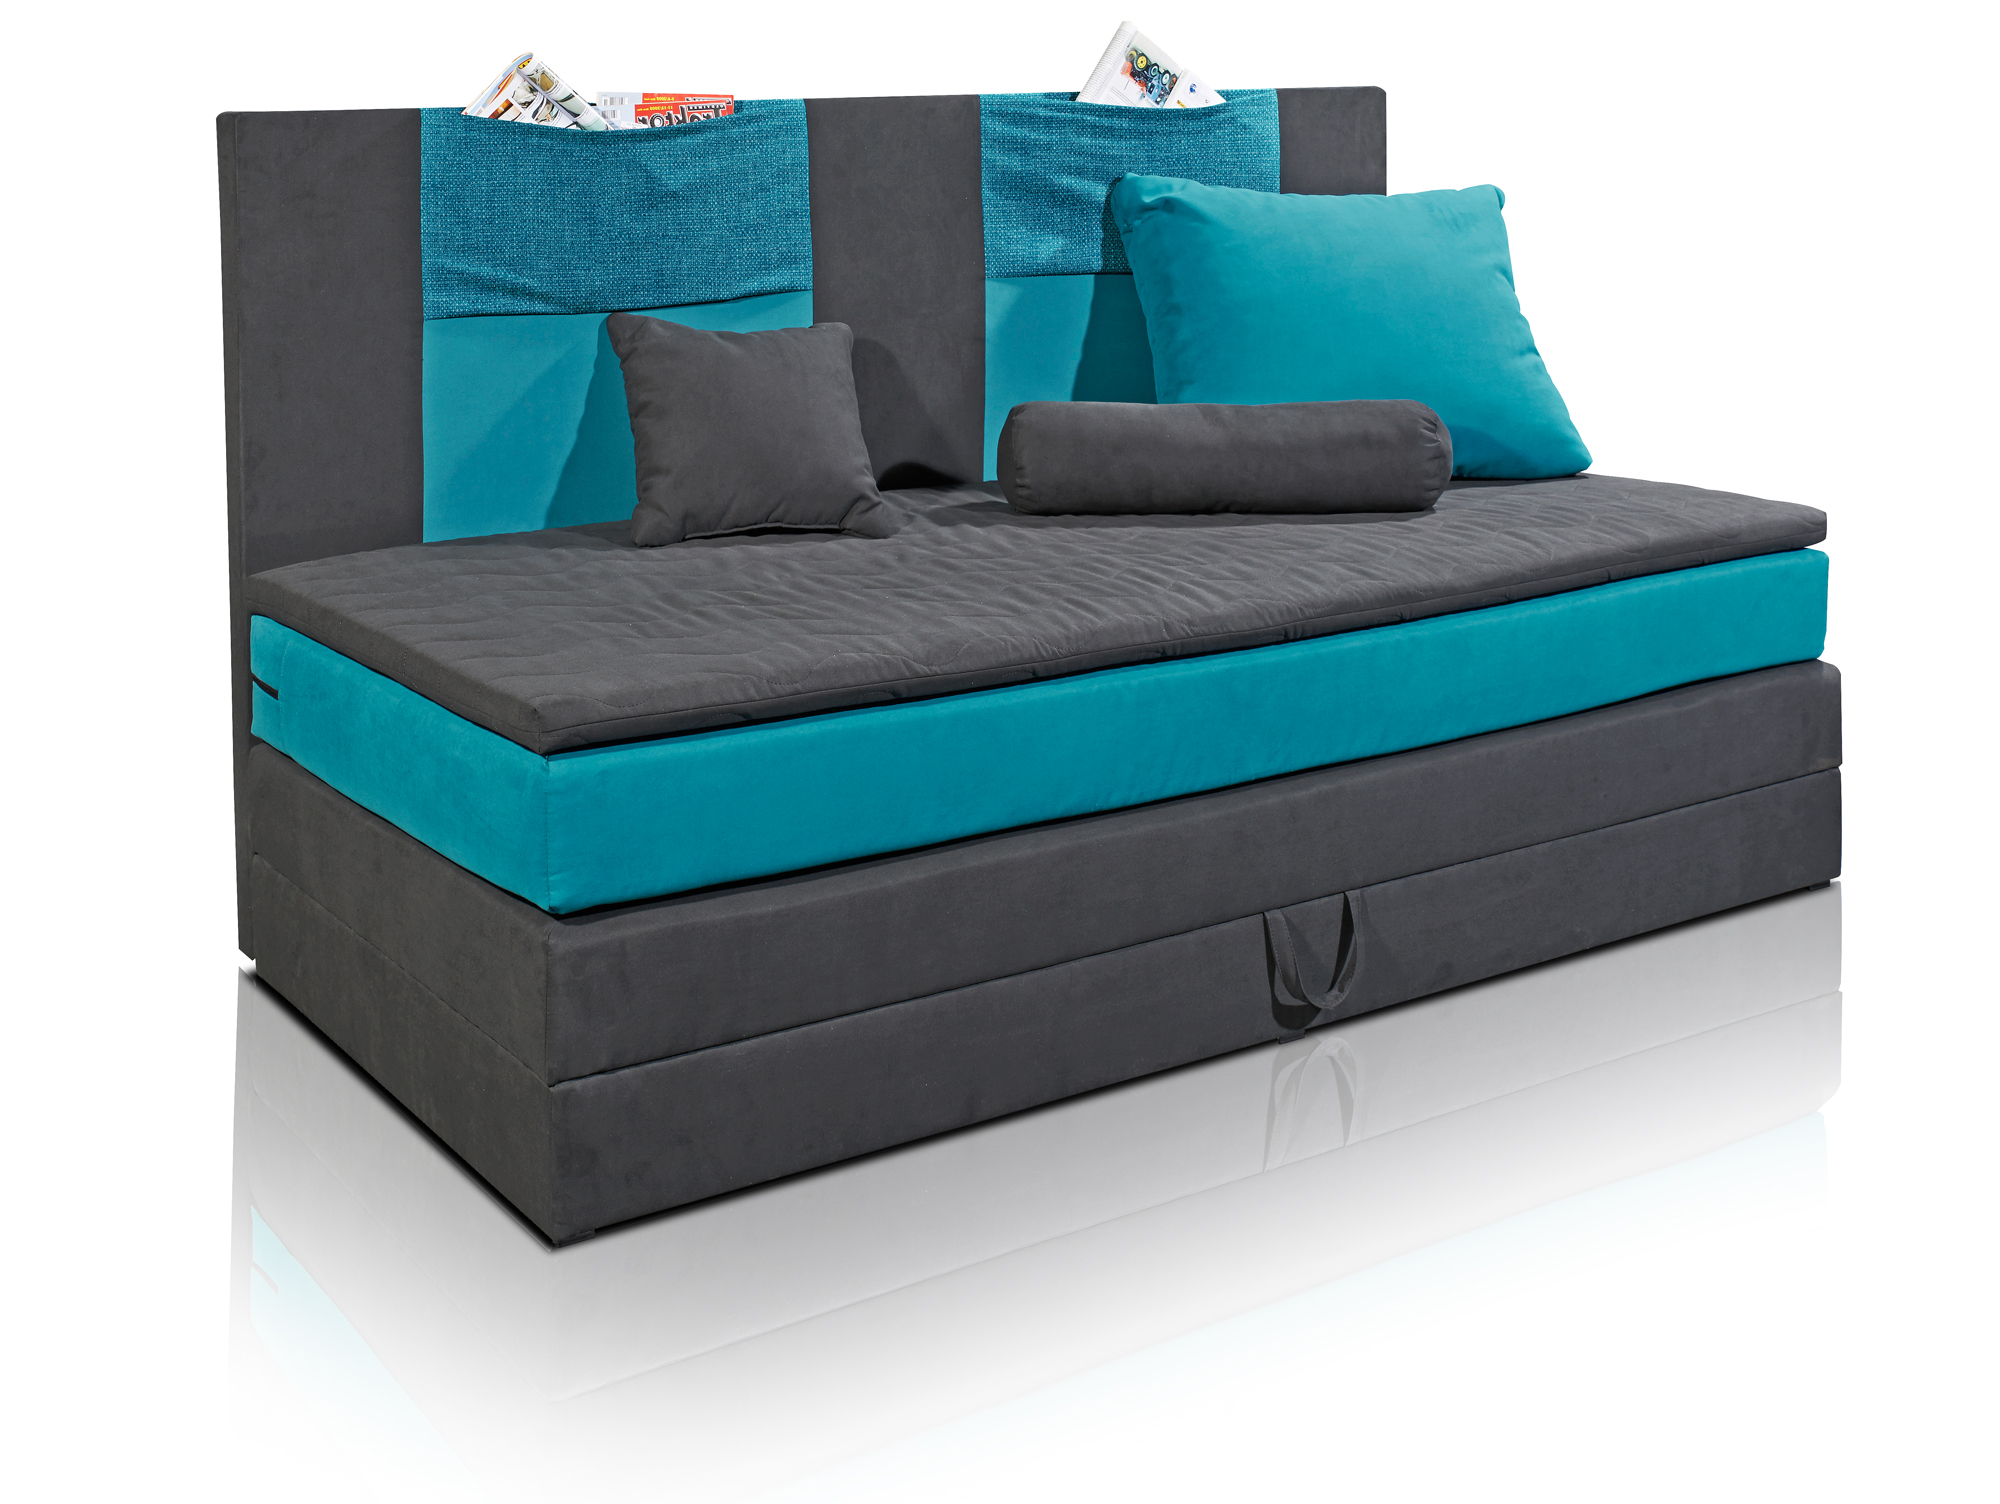 sofa for 200 online kids boxspringbett 90x200 cm schwarz. Black Bedroom Furniture Sets. Home Design Ideas